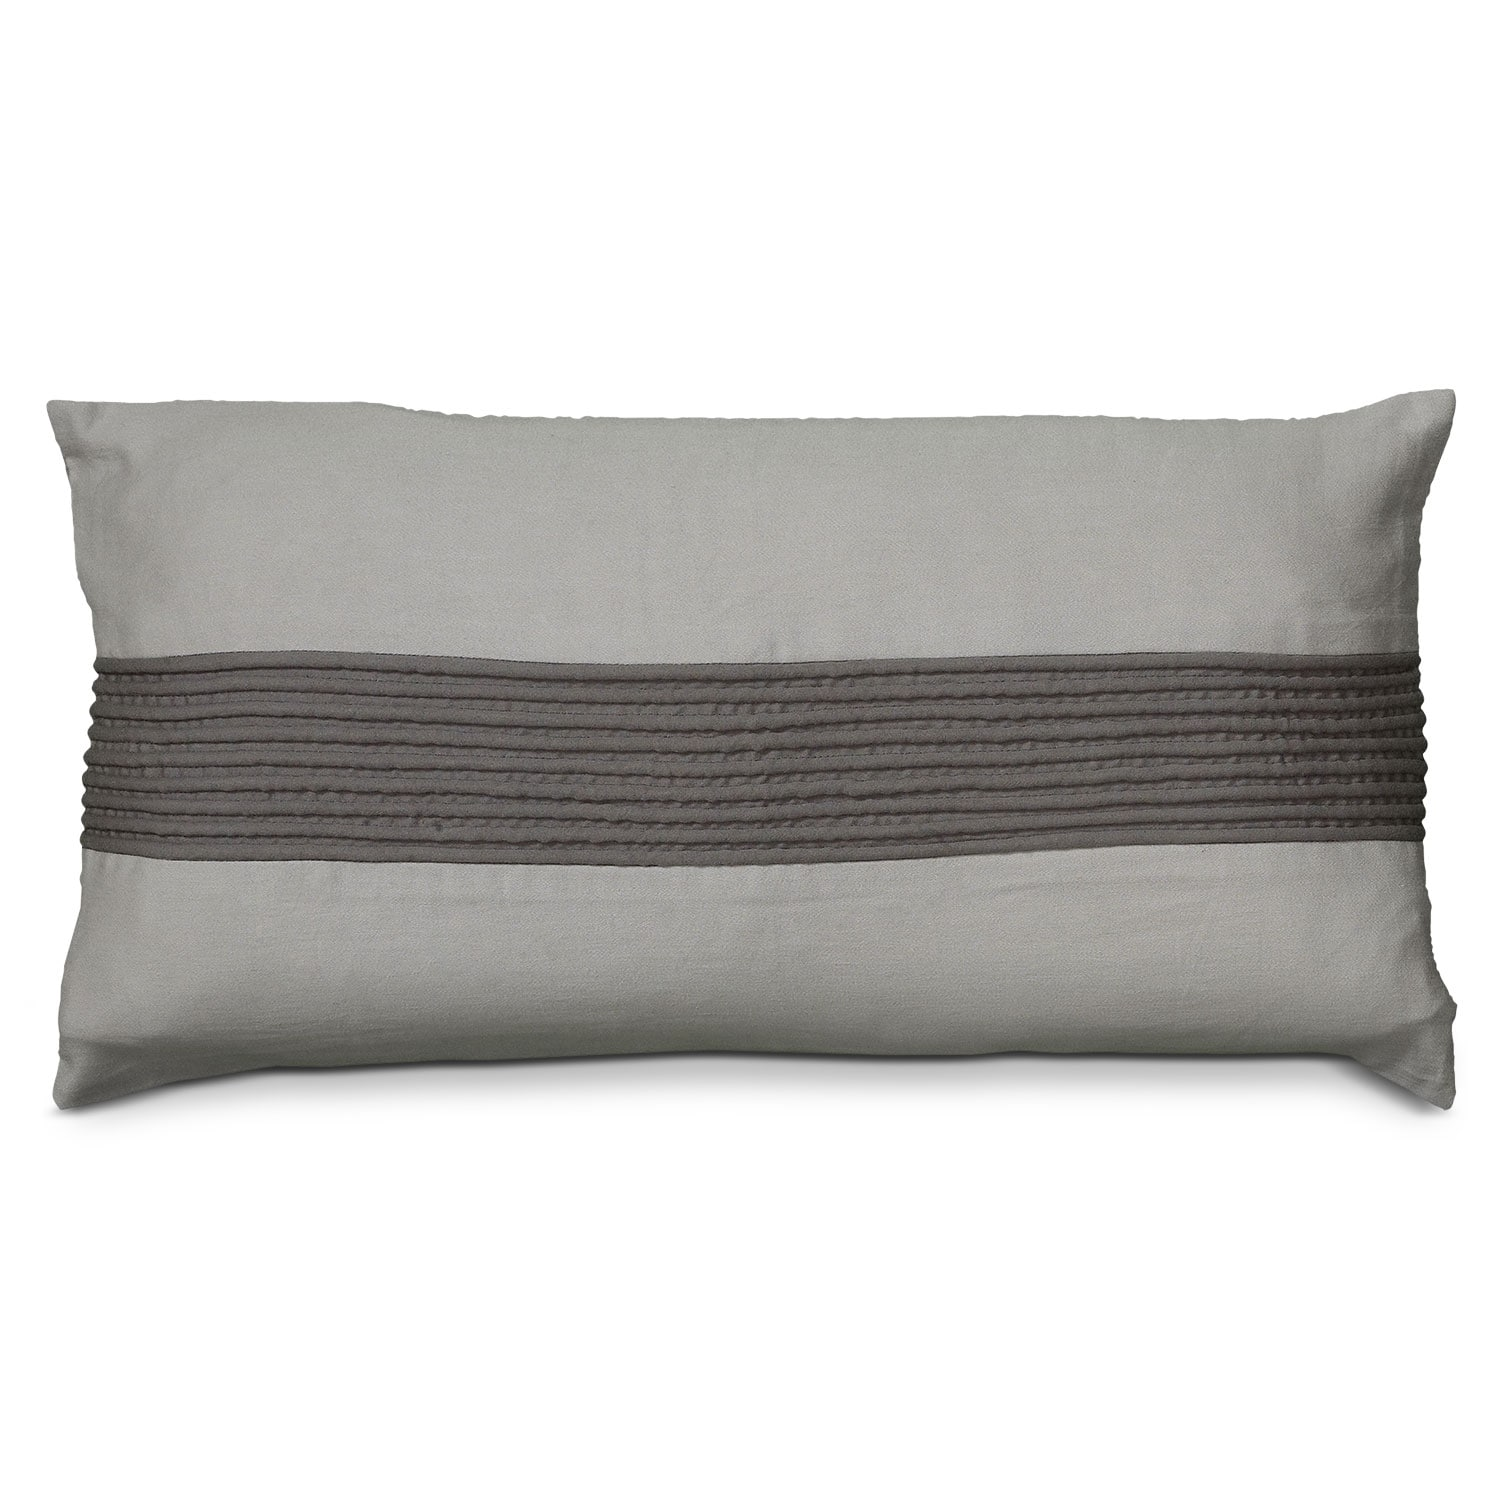 Home Accessories - Valentina Decorative Pillow